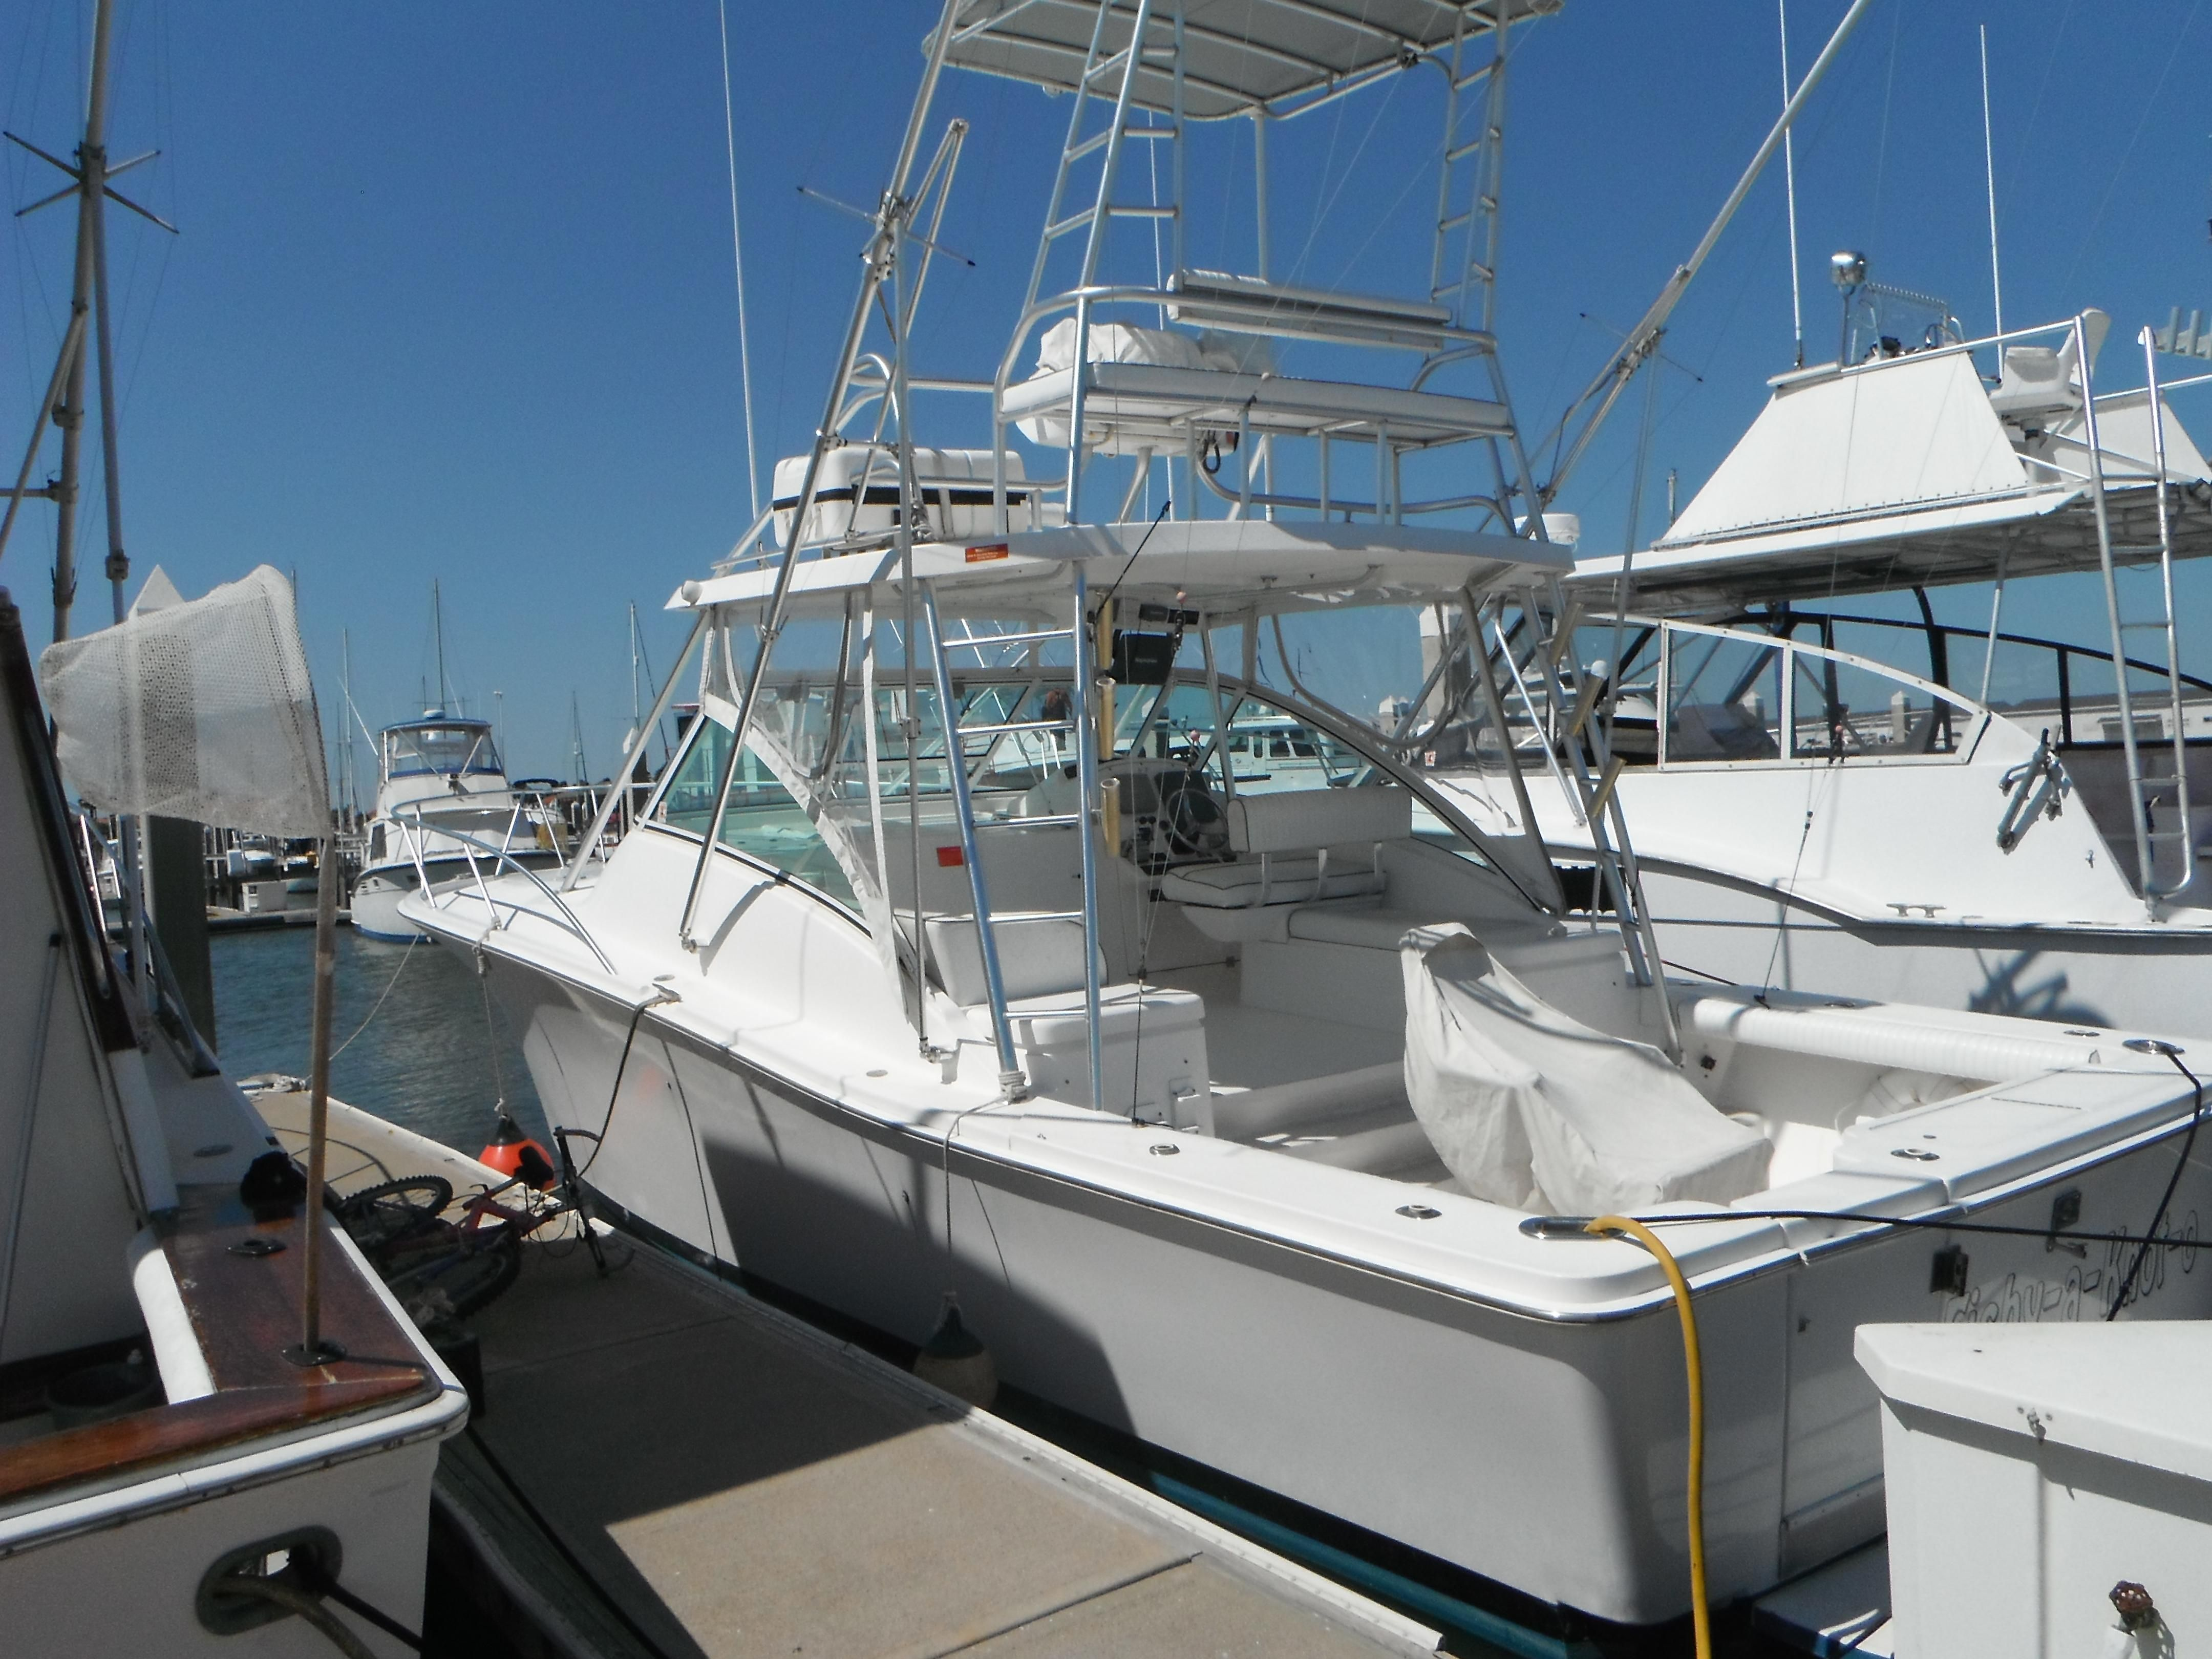 Marlin (TX) United States  city pictures gallery : 2003 Luhrs 36SX Open Power Boat For Sale www.yachtworld.com